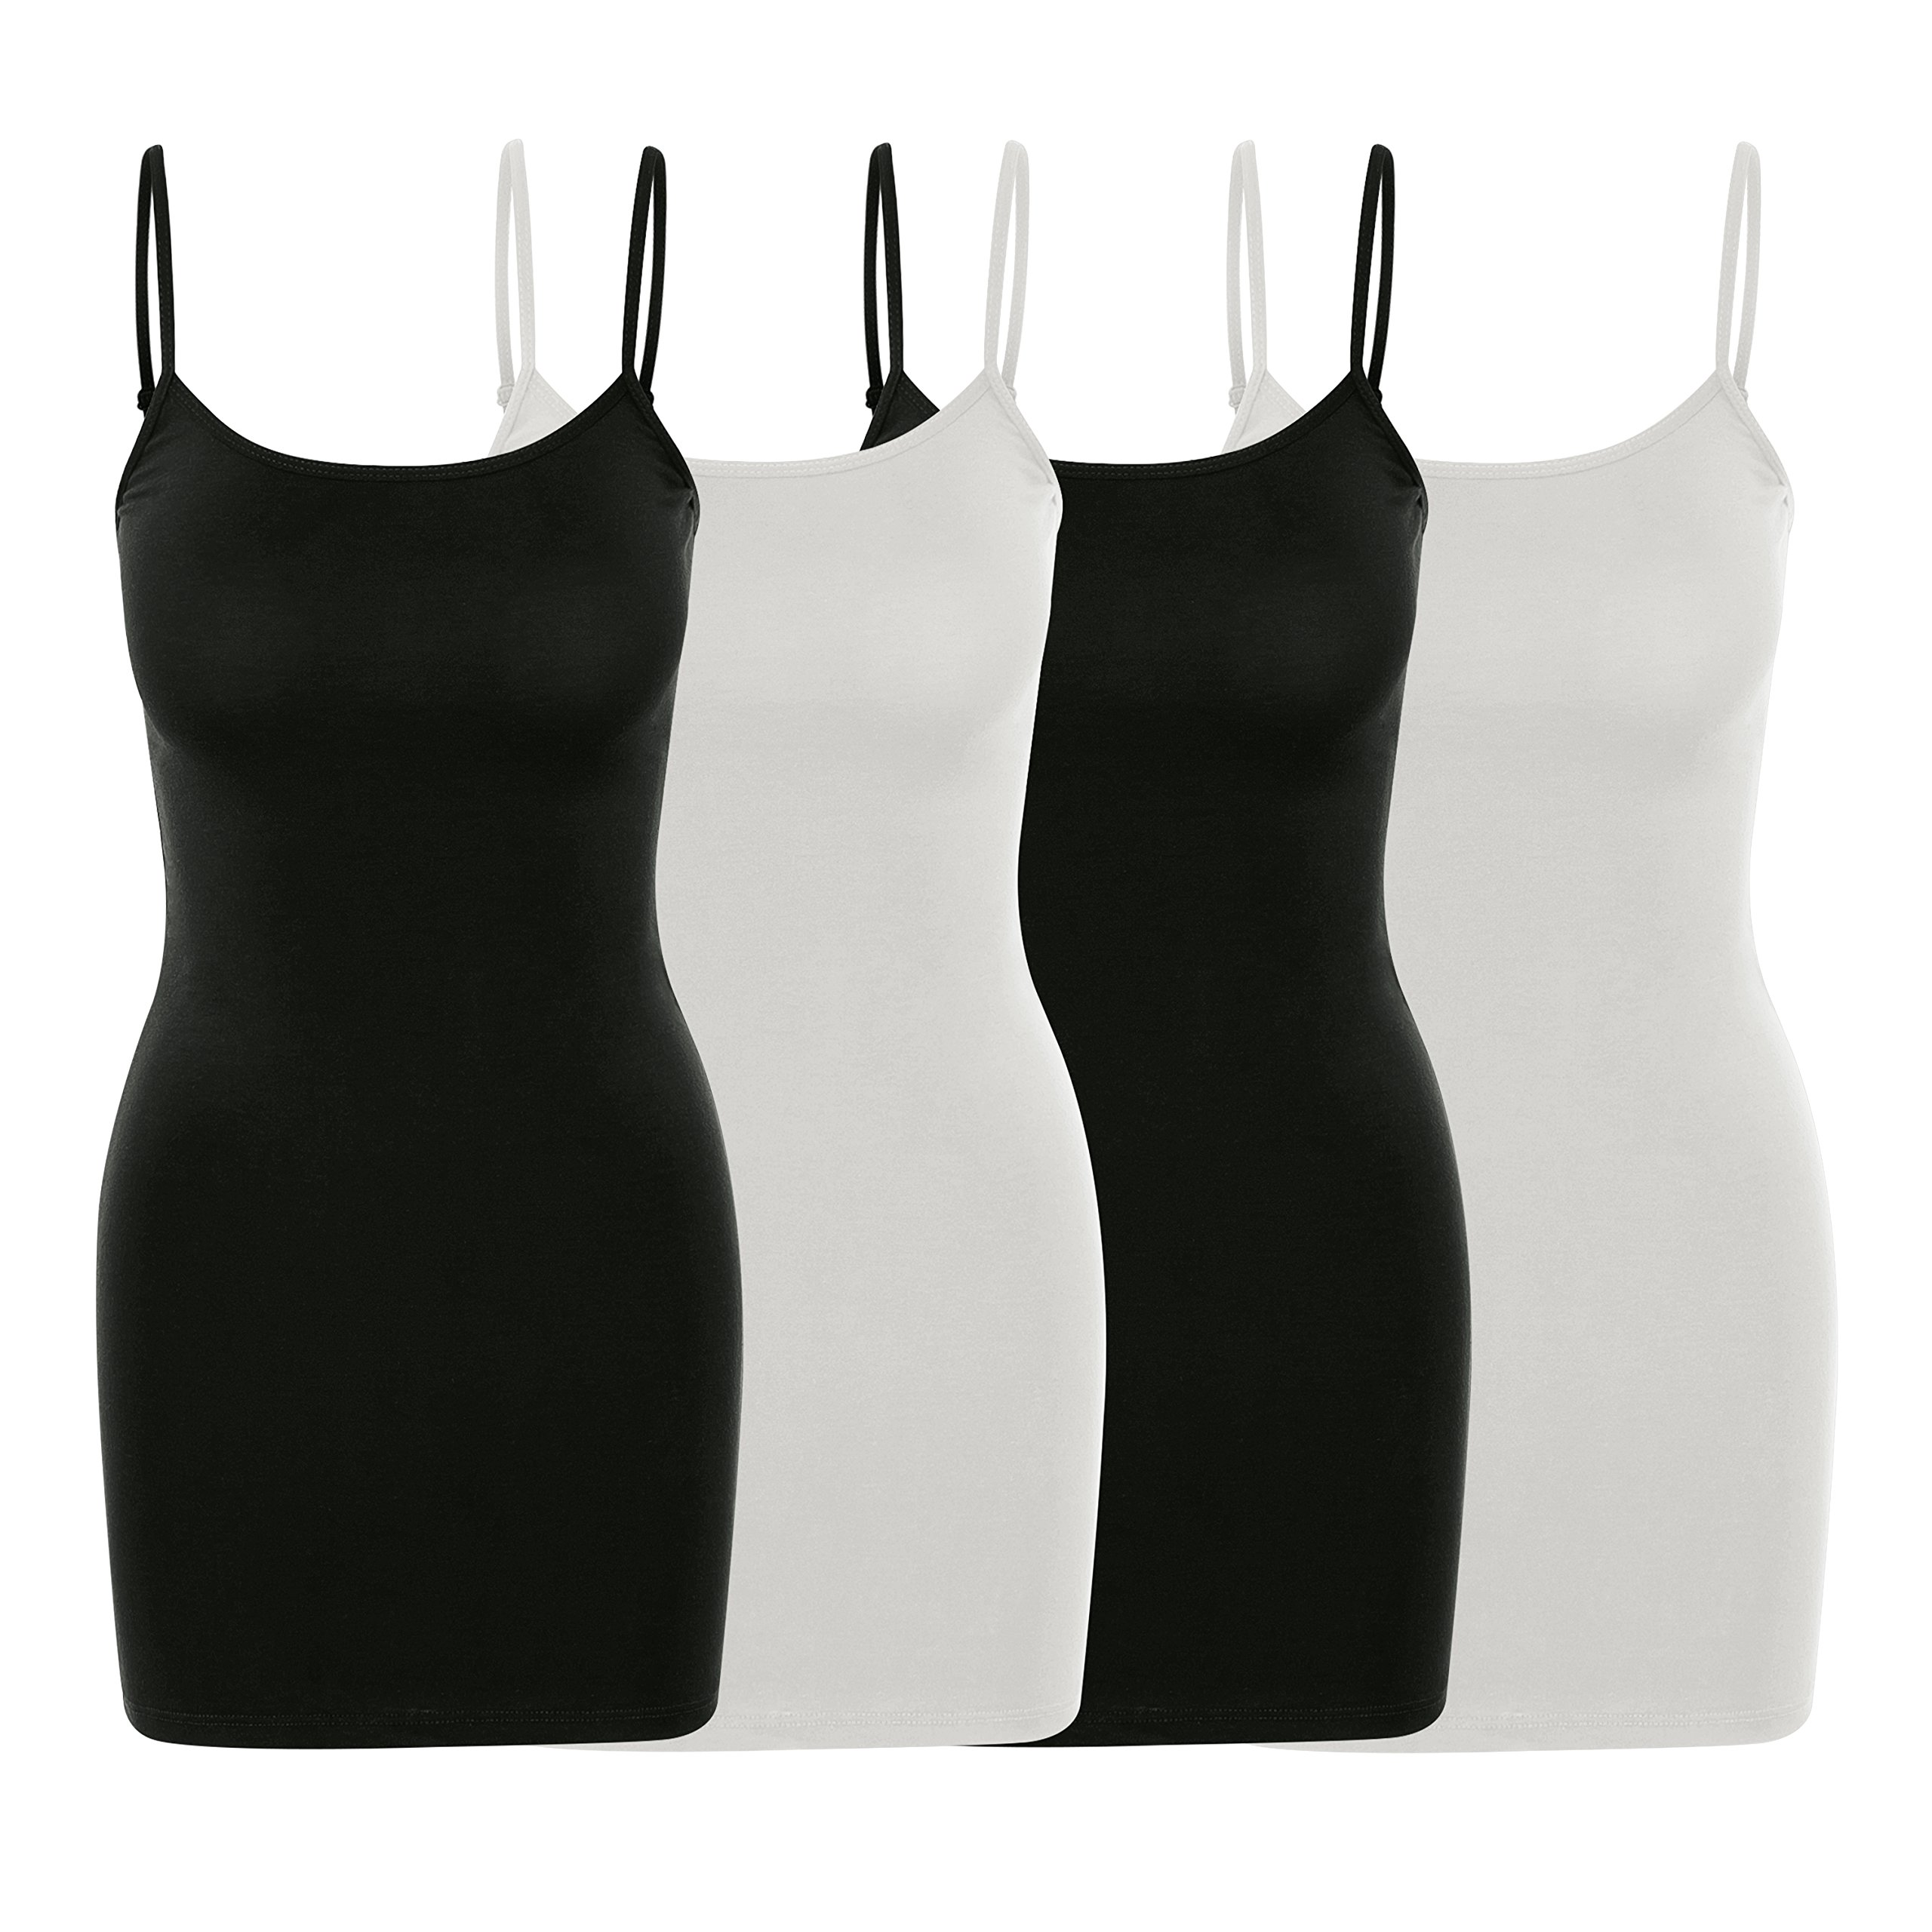 Nolabel [WT402 4 Pack Women's Basic Active Long Length Adjustable Spaghetti Strap Cami Tank Top [2WH/2BK] 2X Large